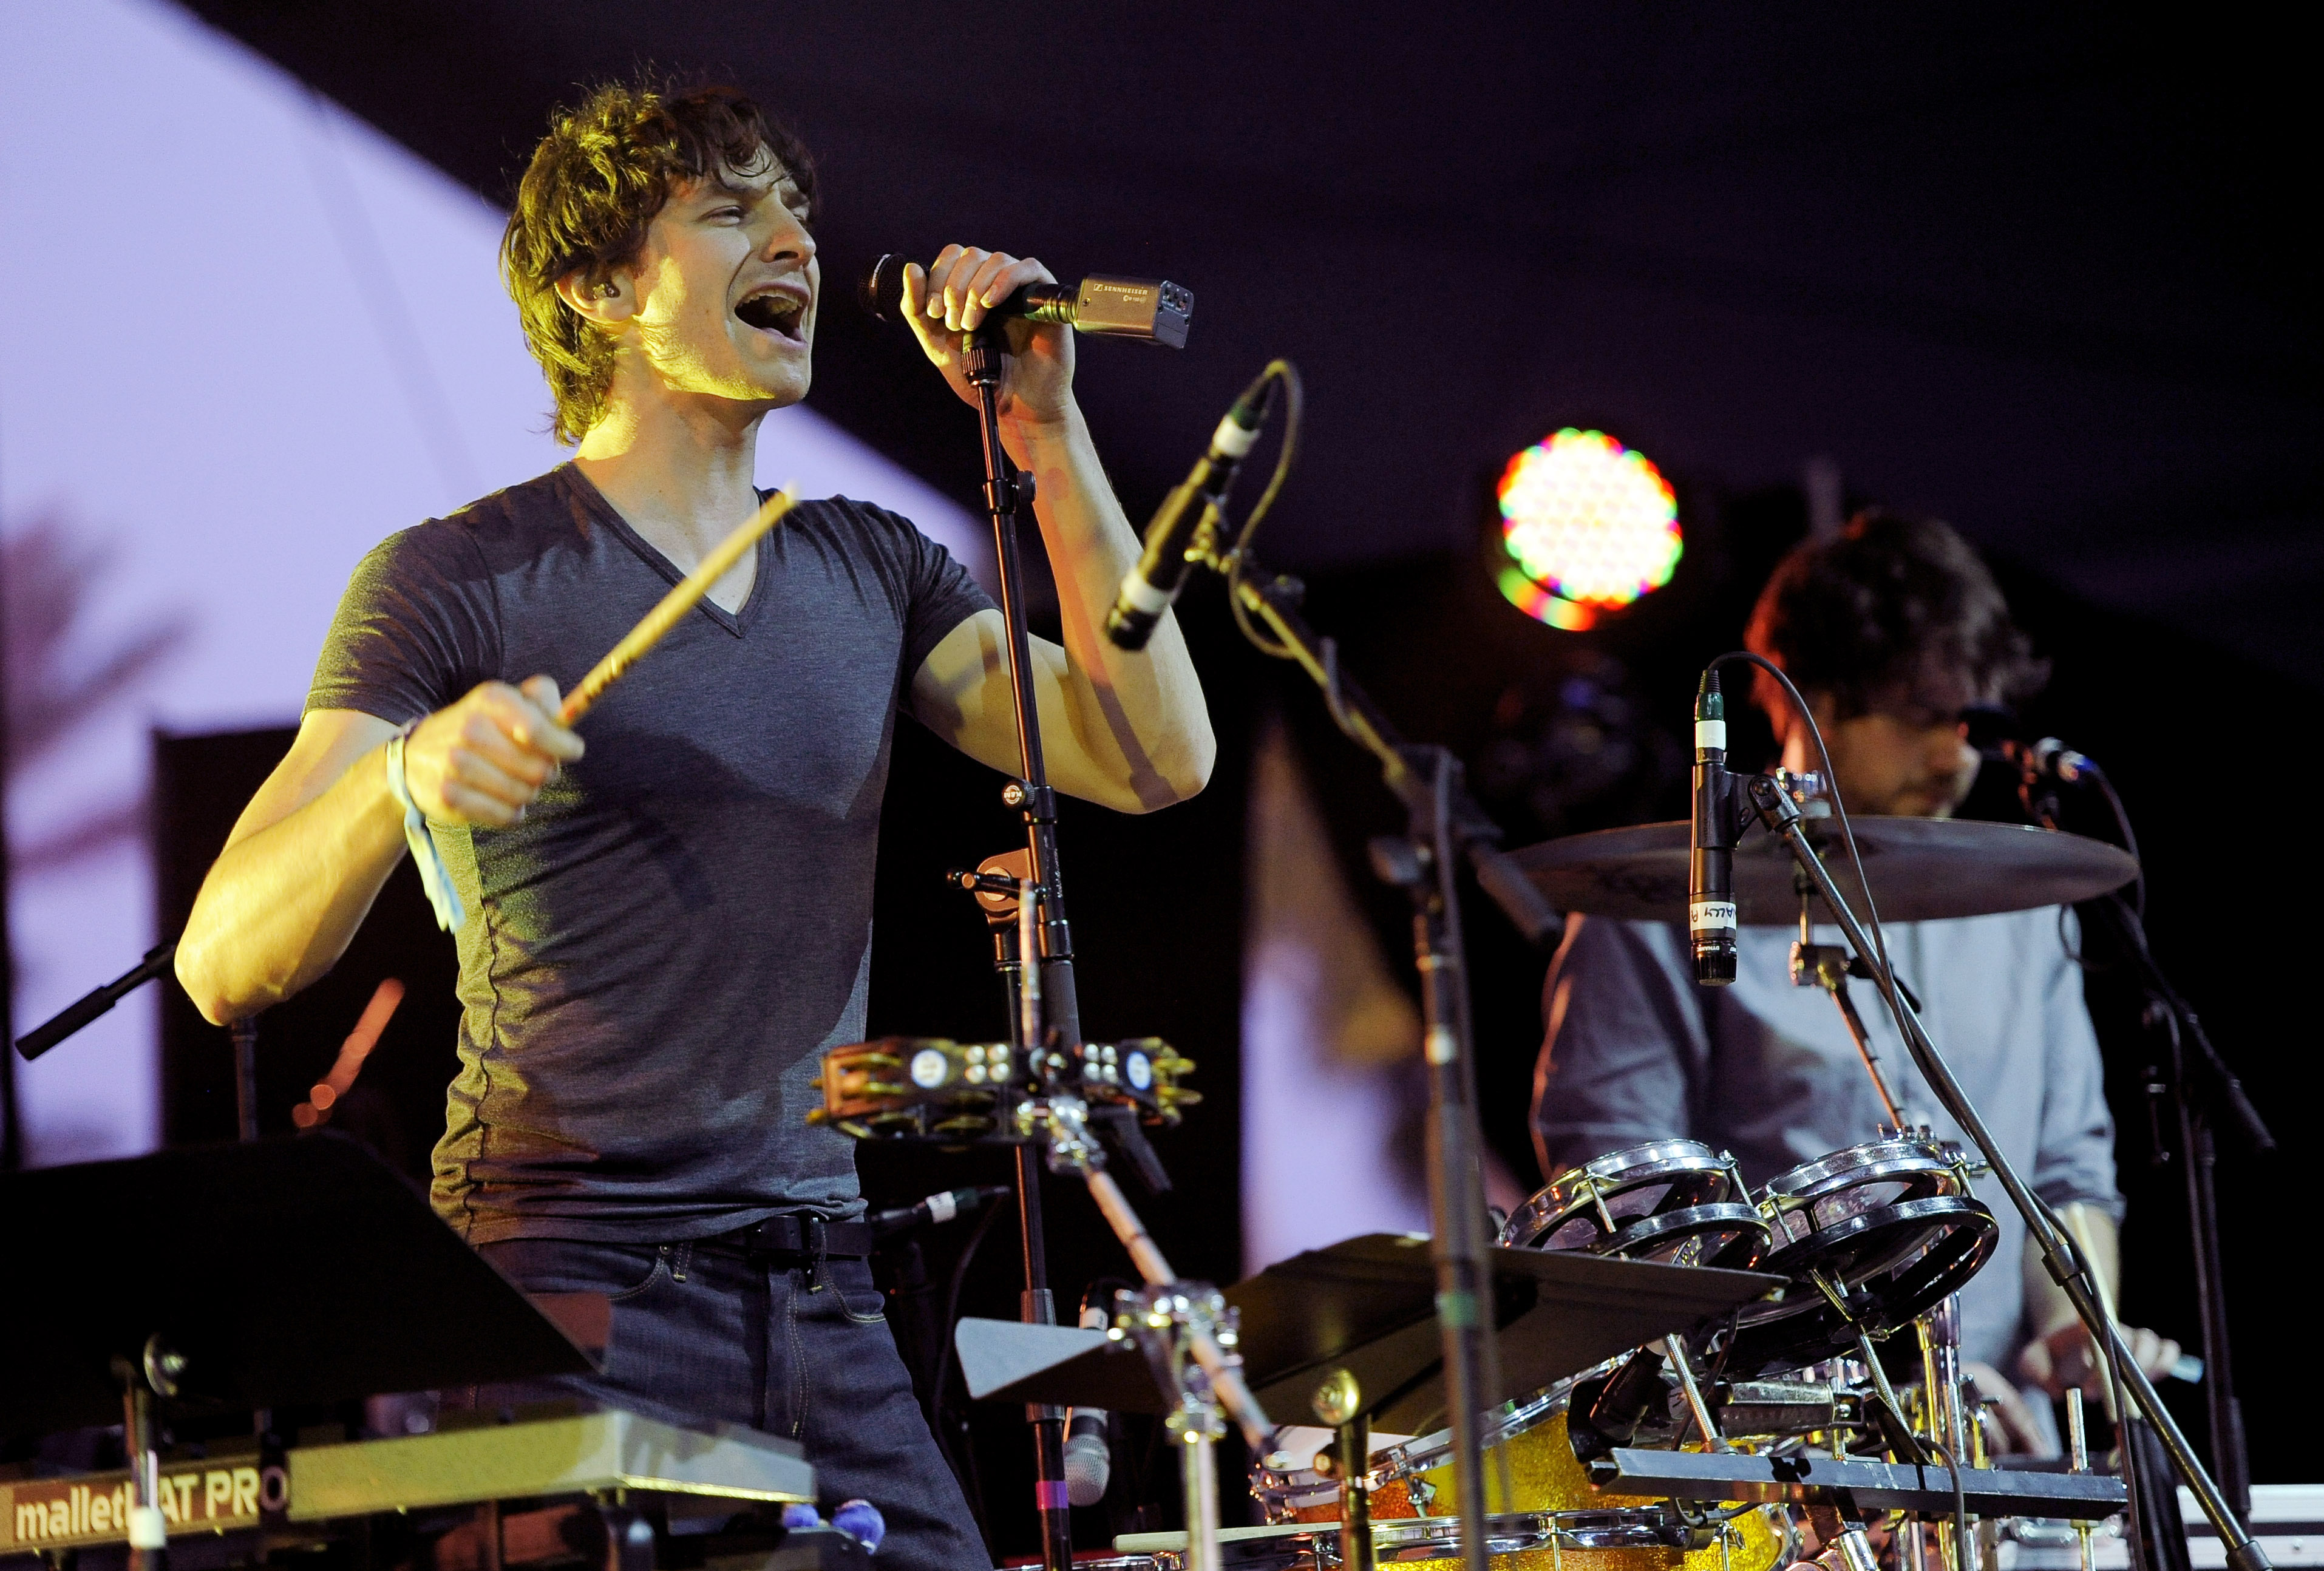 FILE - In this April 15, 2012 file photo, Australian artist Gotye performs during the first weekend of the 2012 Coachella Valley Music and Arts Festival in Indio, Calif. Botye's